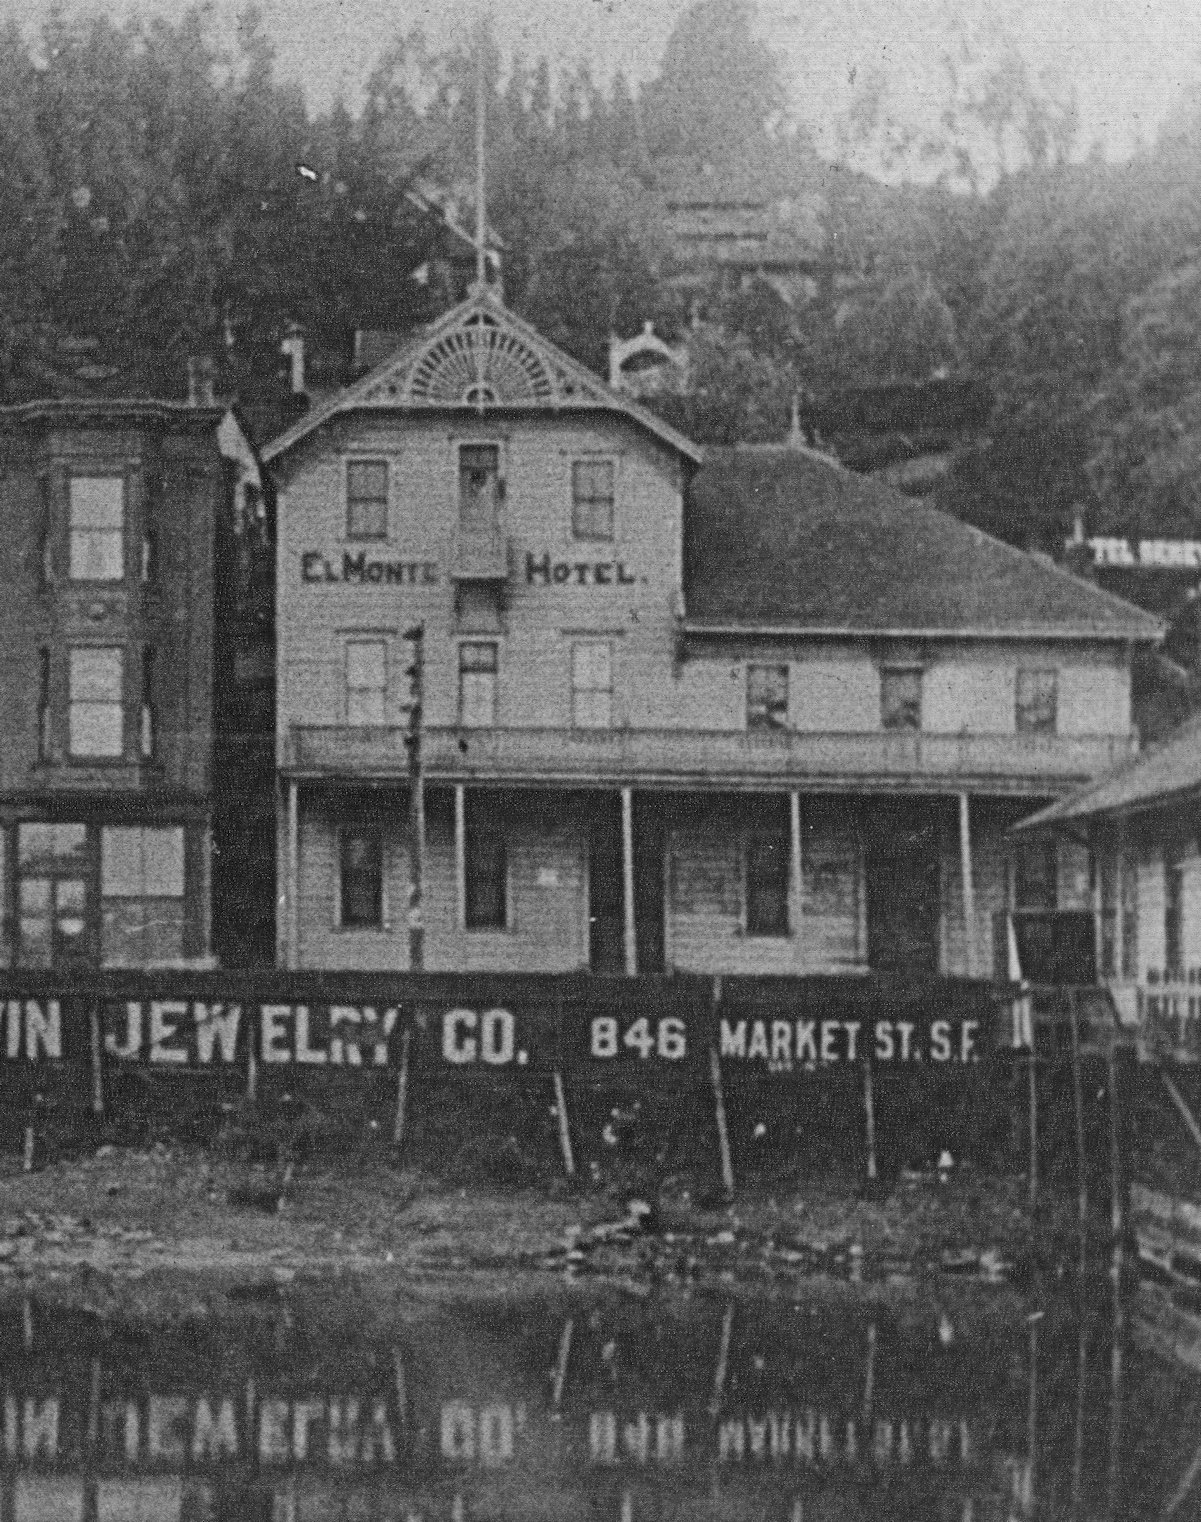 """The El Monte Hotel, c. 1897, above the """"Pond,"""" which is now Vina del Mar Plaza. An advertisement for Baldwin Jewelry in San Francisco hangs below street level"""